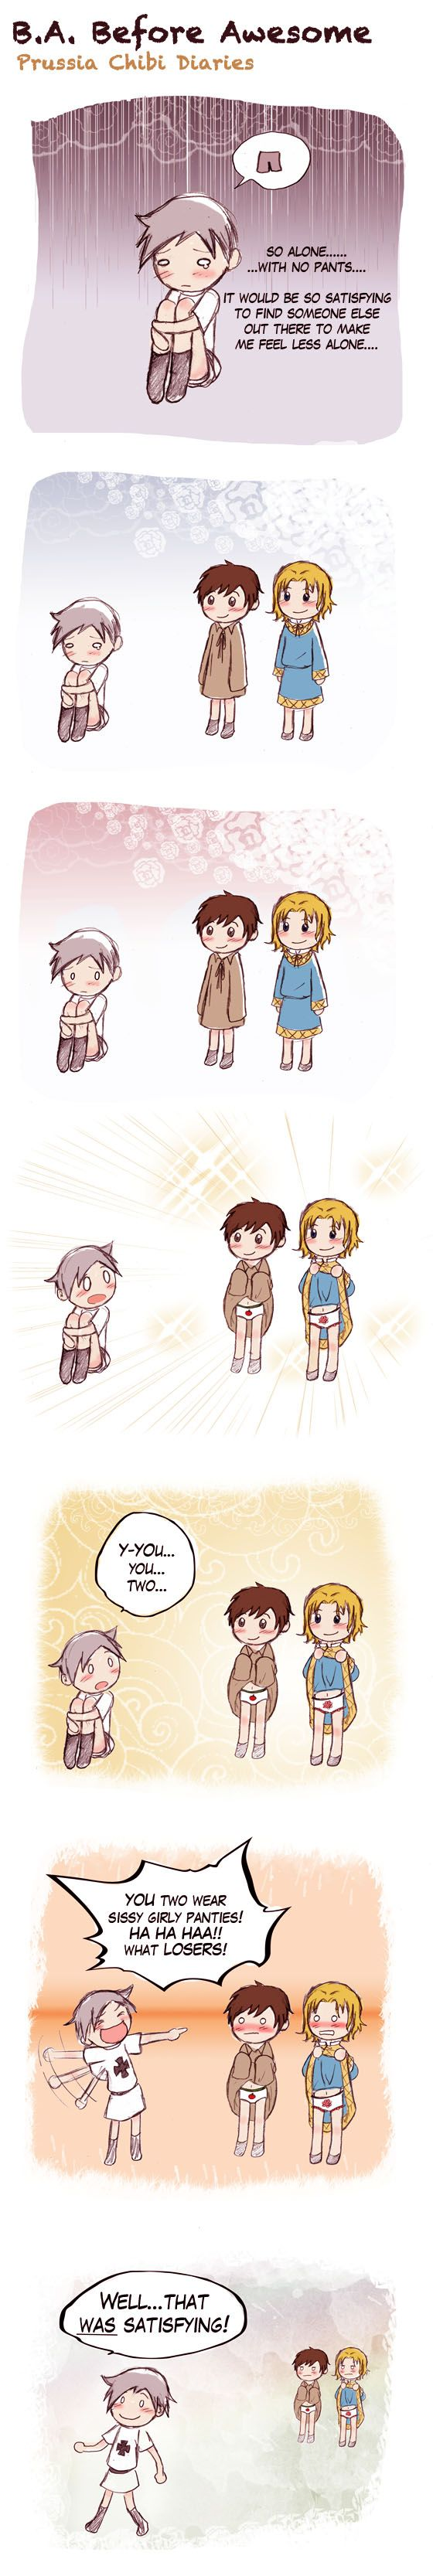 Chibi Prussia 10! The Bad Touch Trio......one must be patient when dealing with such Awesomeness!